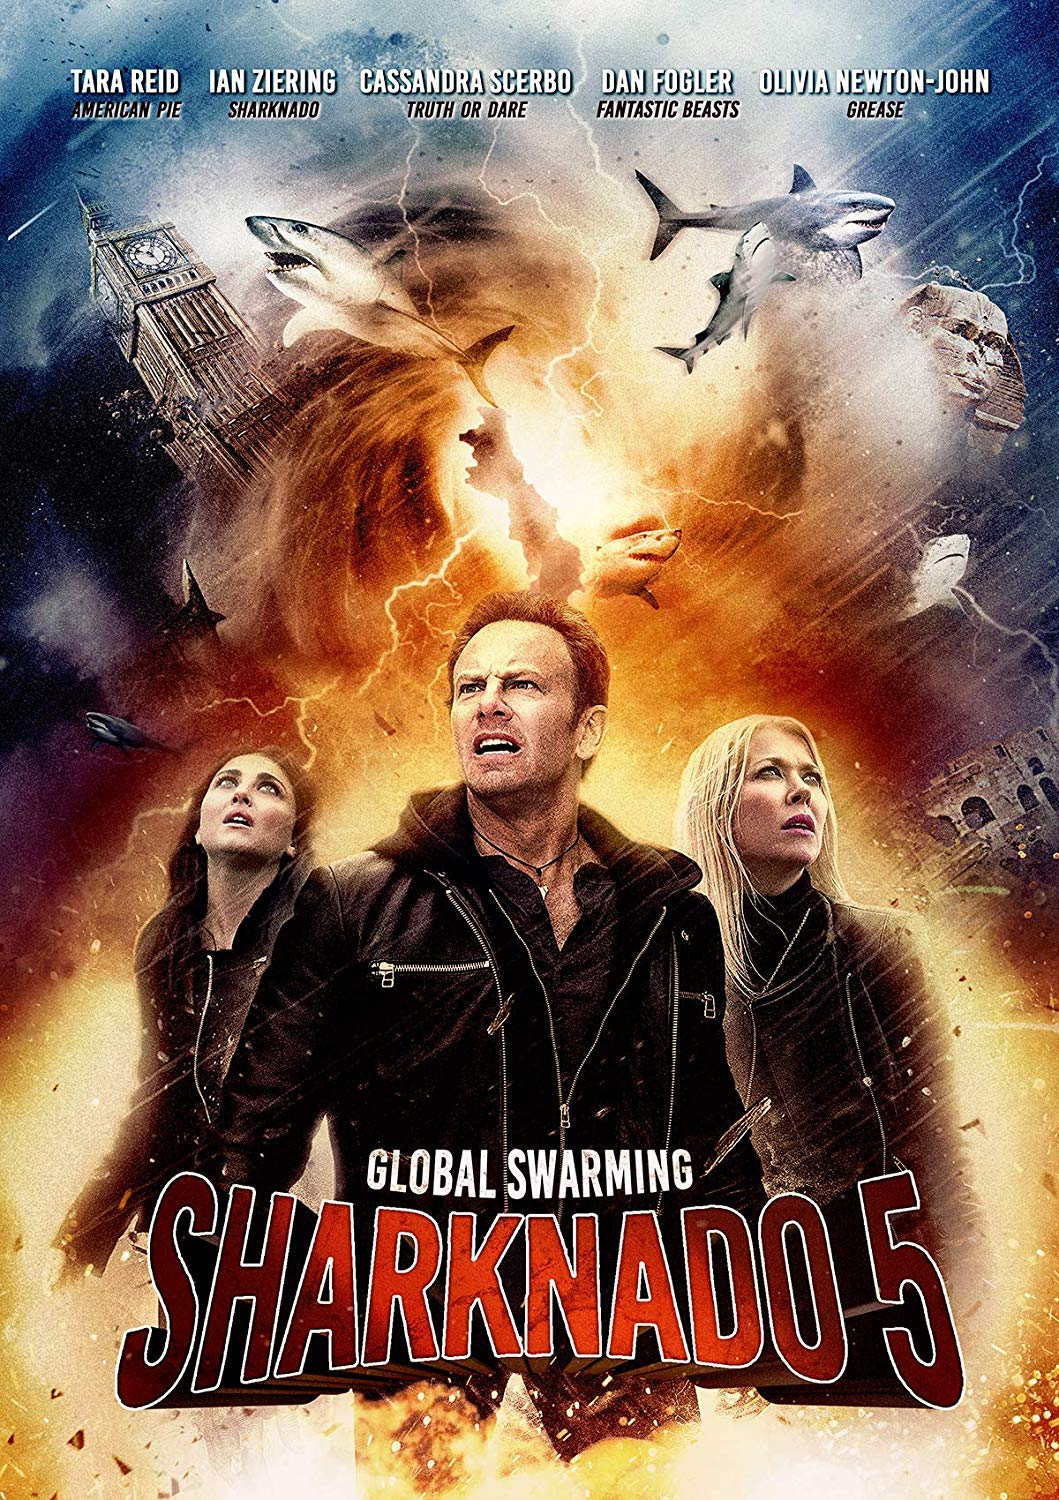 Sharknado 5: Global Swarming [DVD] [Reino Unido]: Amazon.es: Ian ...